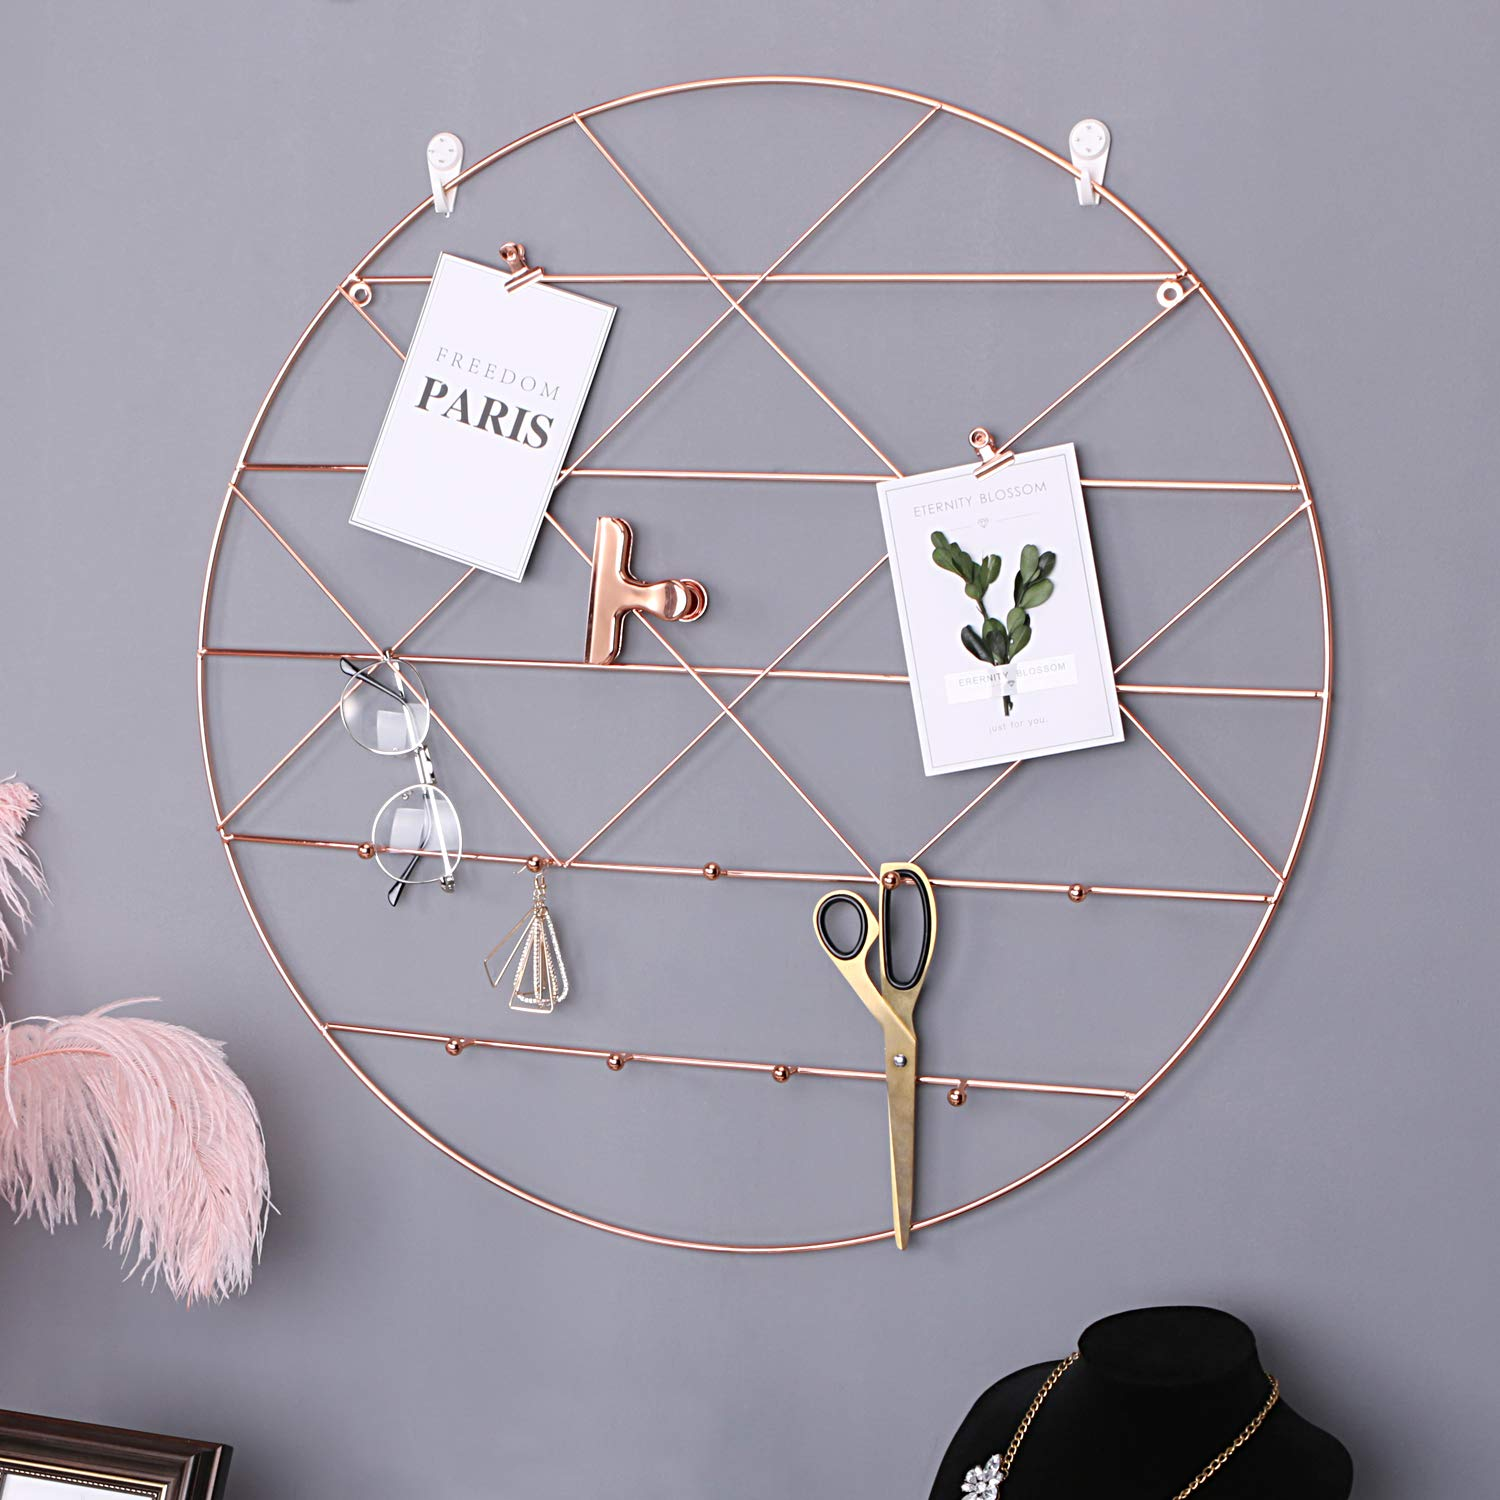 Simmer Stone Round Wall Grid Panel for Photo Hanging Display & Wall Decoration Organizer, Multi-Functional Wall Storage Display Grid with Hook, Size 23.6'' x 23.6'', Rose Gold